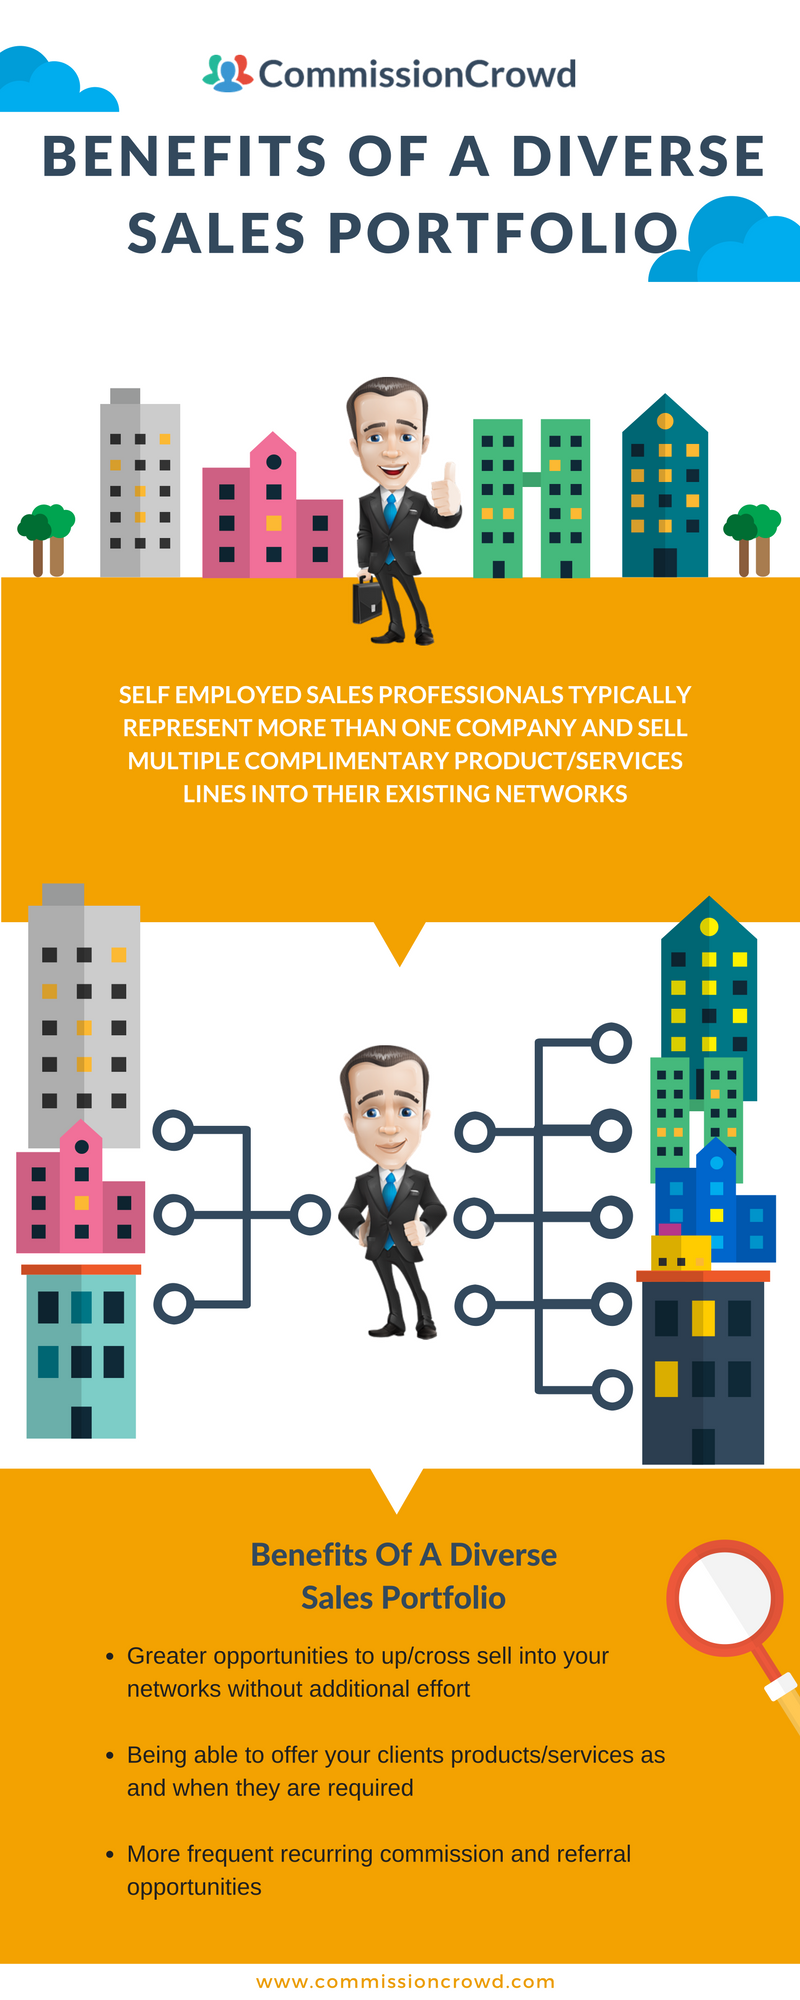 benefits of a diverse sales portfolio infographic